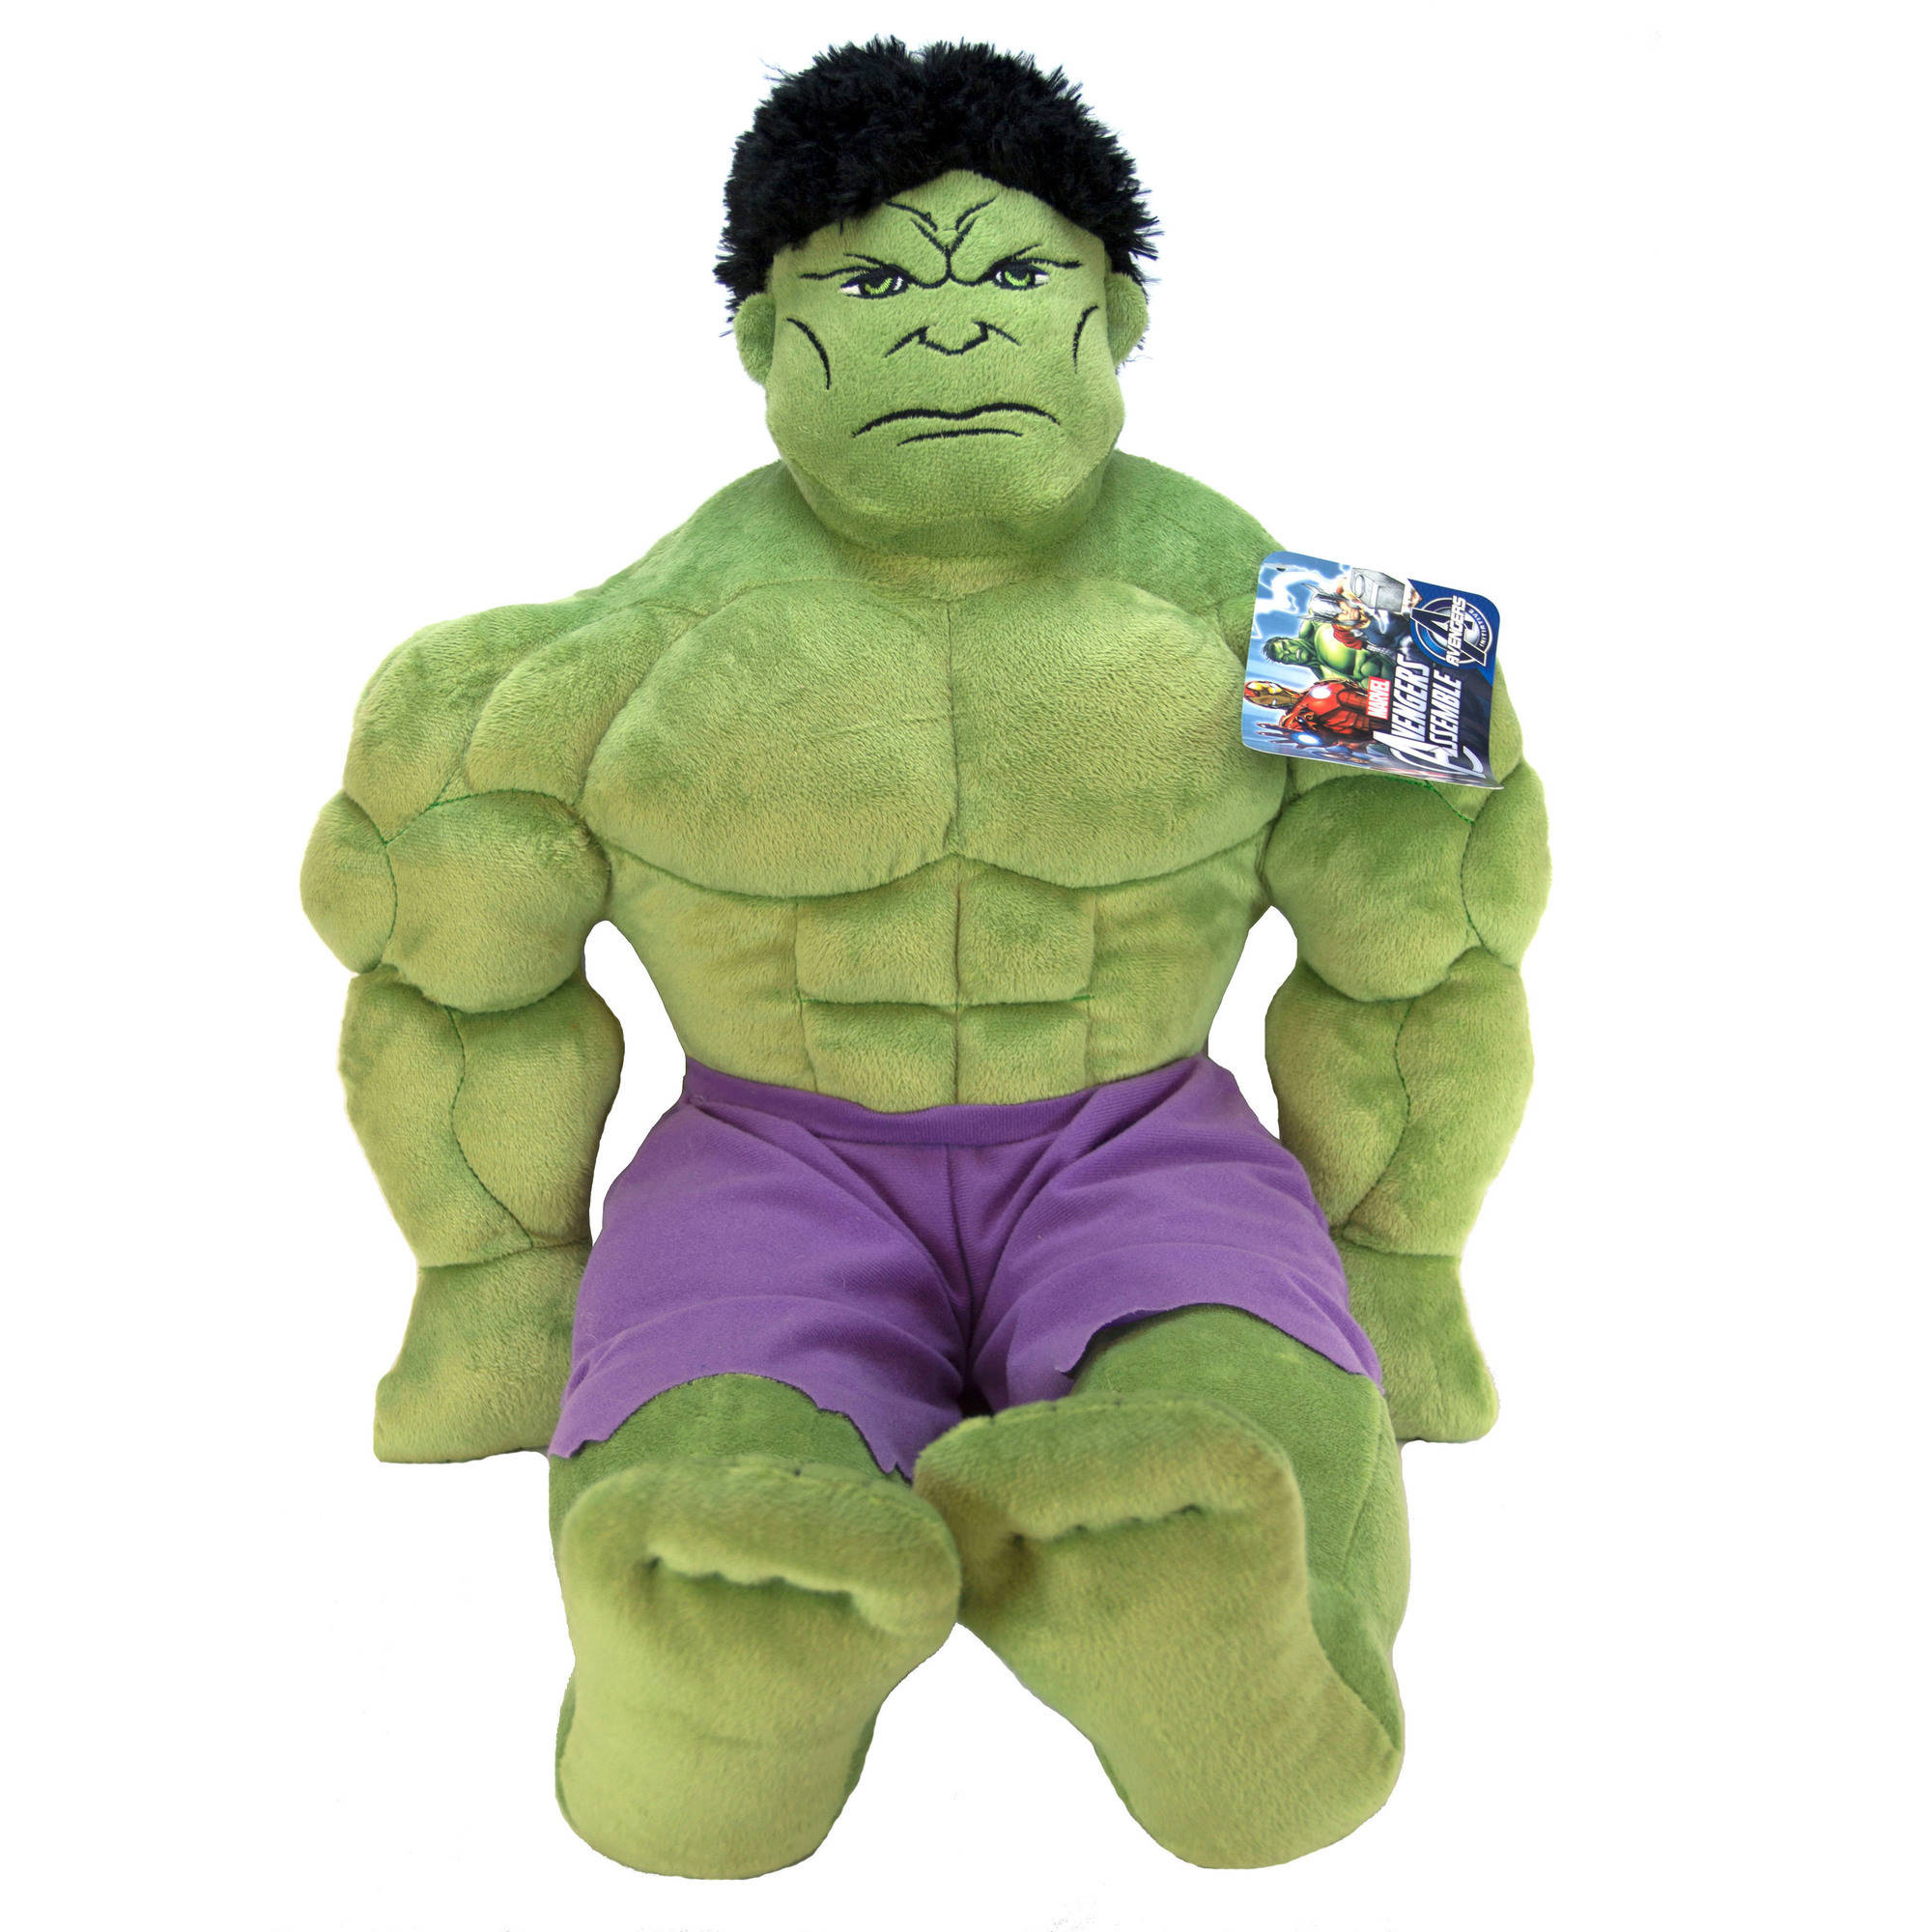 Marvel Avengers Hulk Pillow Buddy